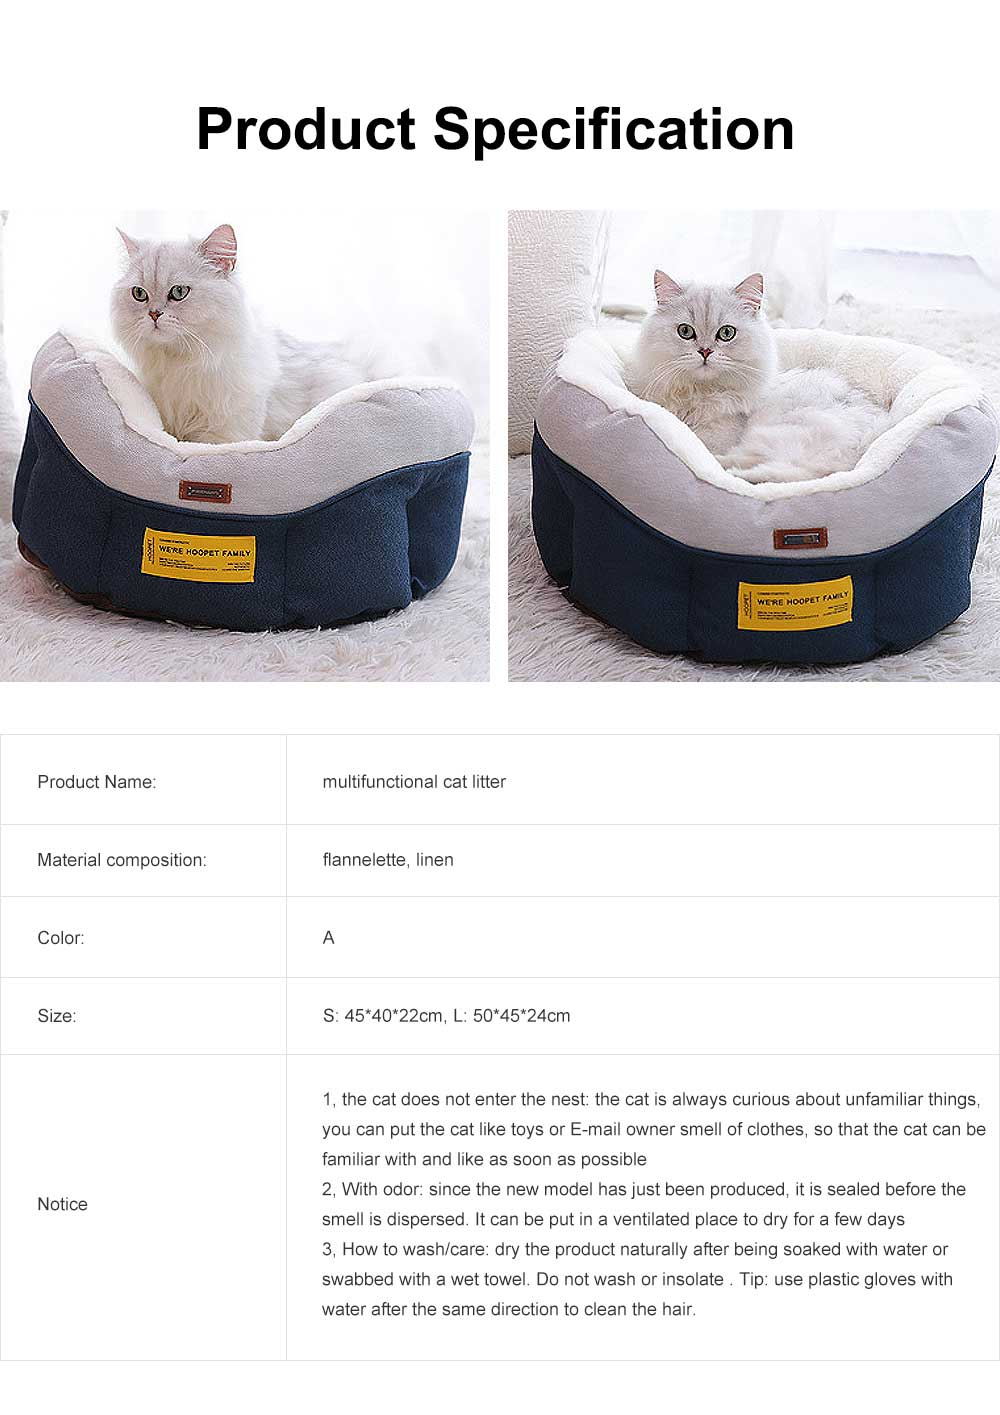 Cat Beds For Indoor Cats Washable, Multifunctional Cat Litter With  6